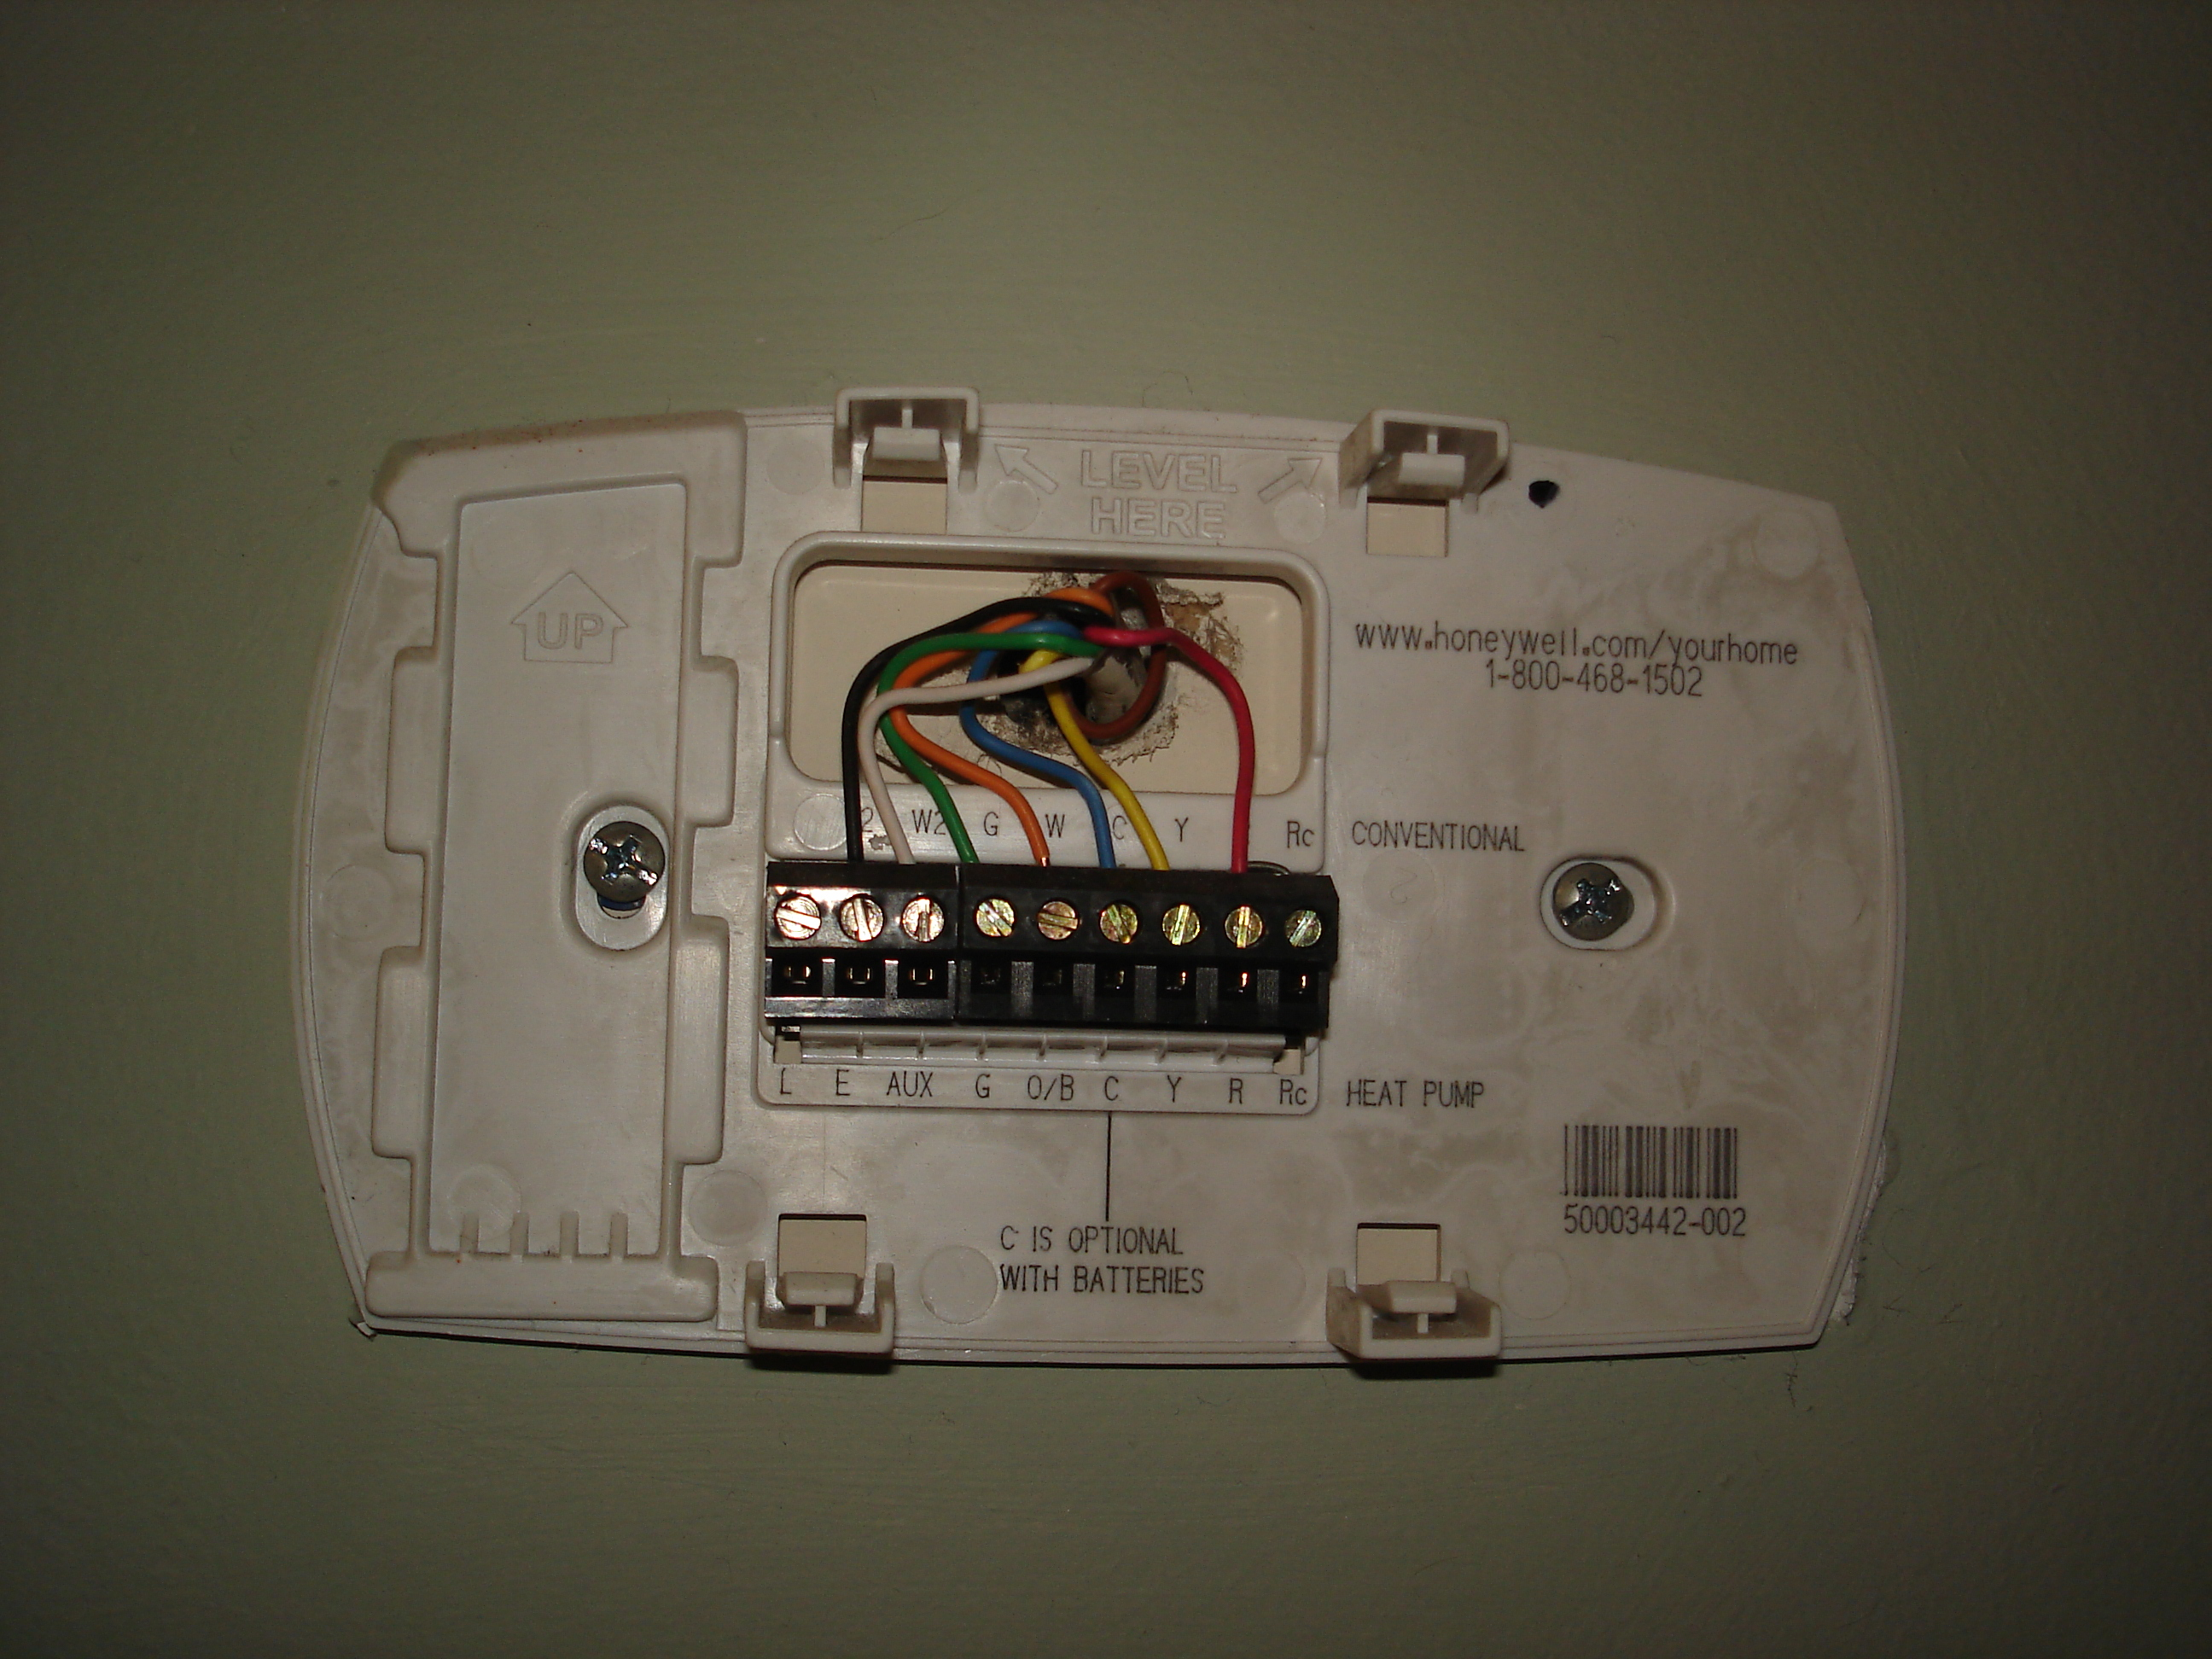 wiring diagram for a hunter thermostat images heat pump need a color code wiring diagram get image about